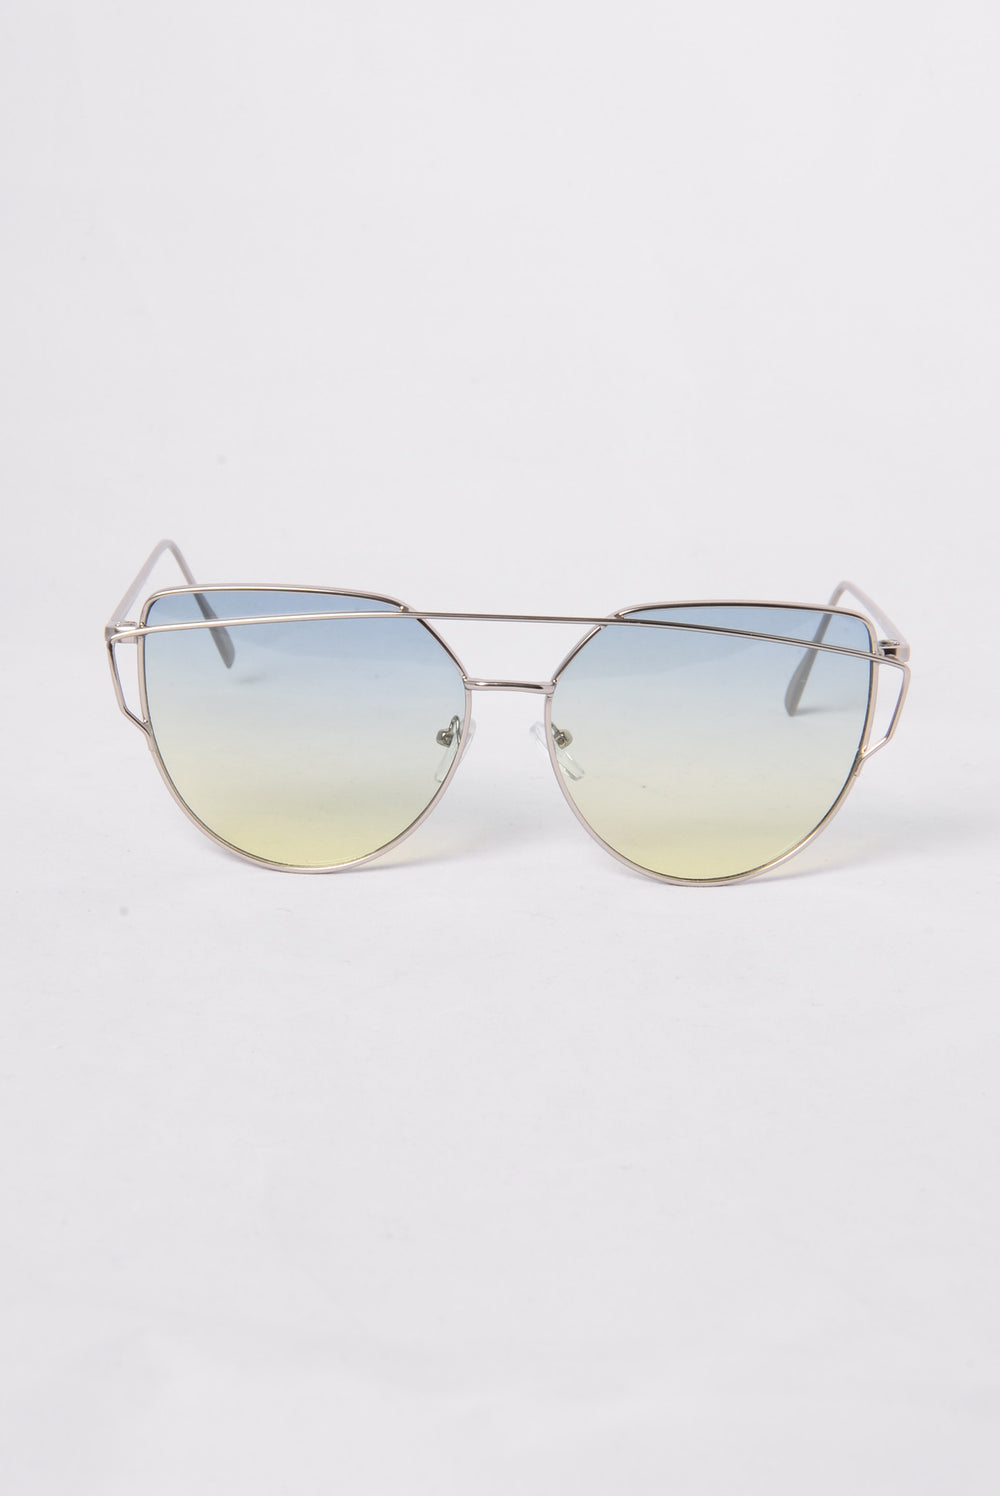 La Concha Beach Sunglasses - Silver/Green